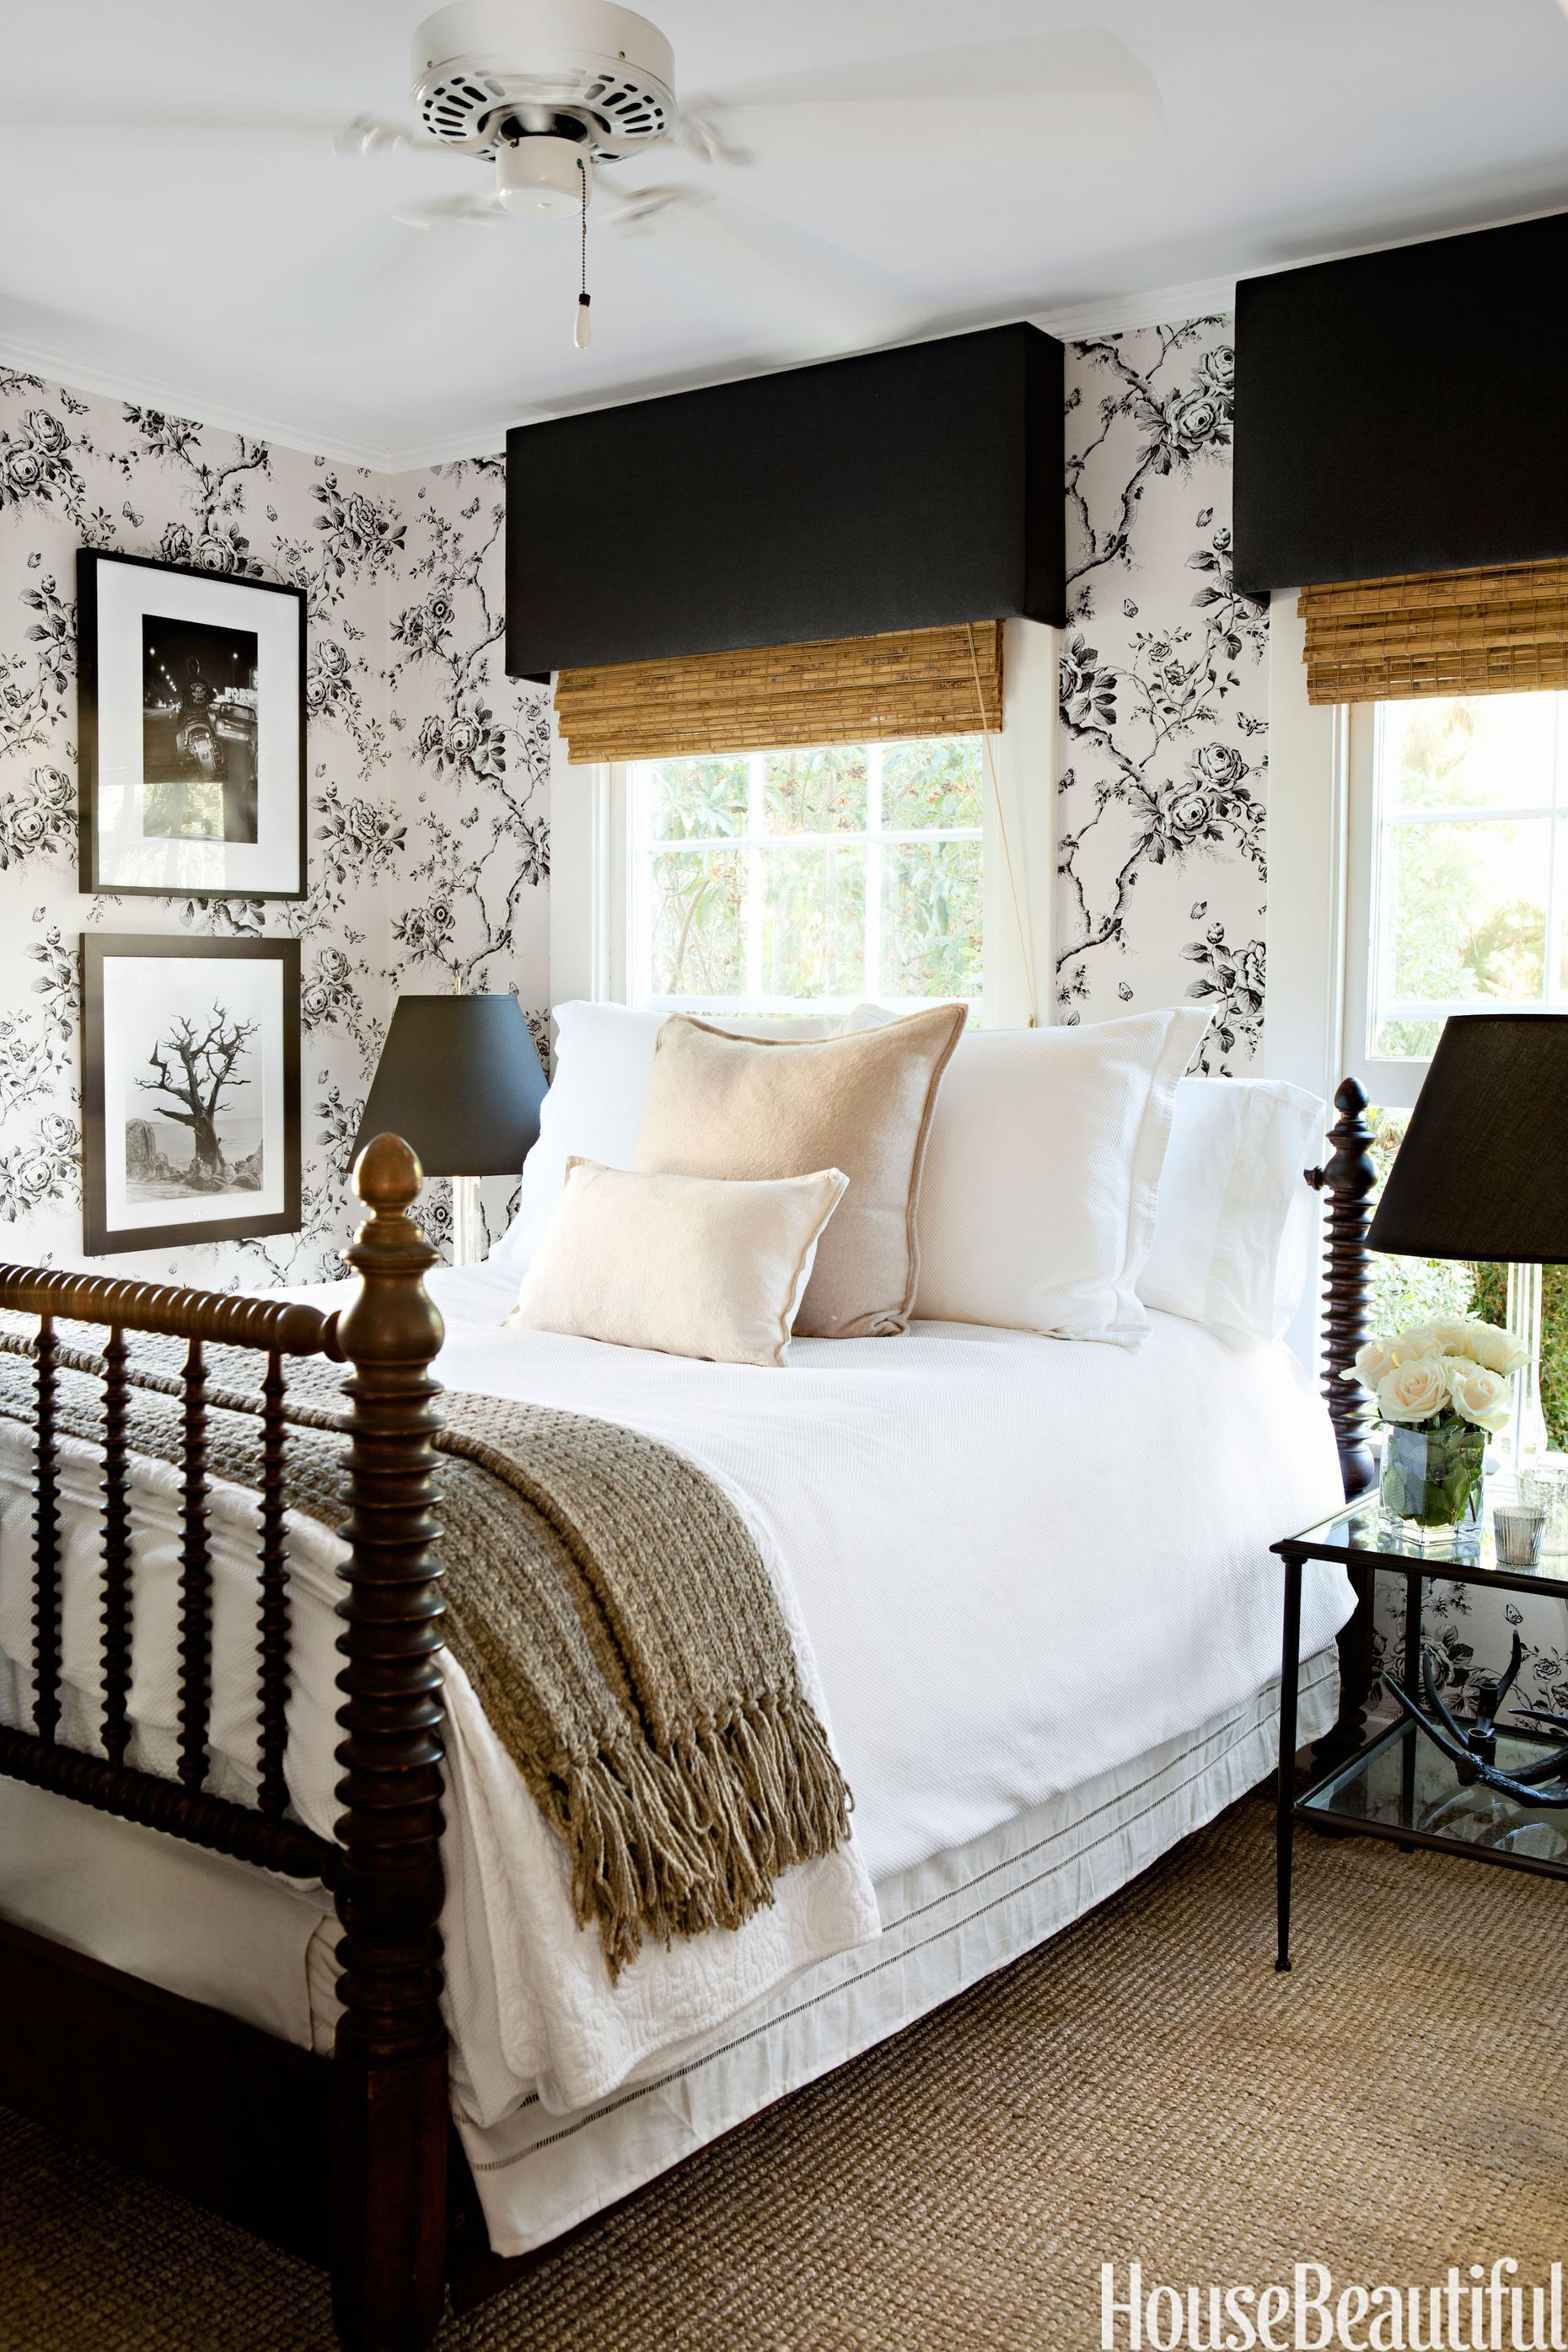 15 beautiful black and white bedroom ideas black and white decor rh housebeautiful com black and white bedroom ideas black and white bedroom walls